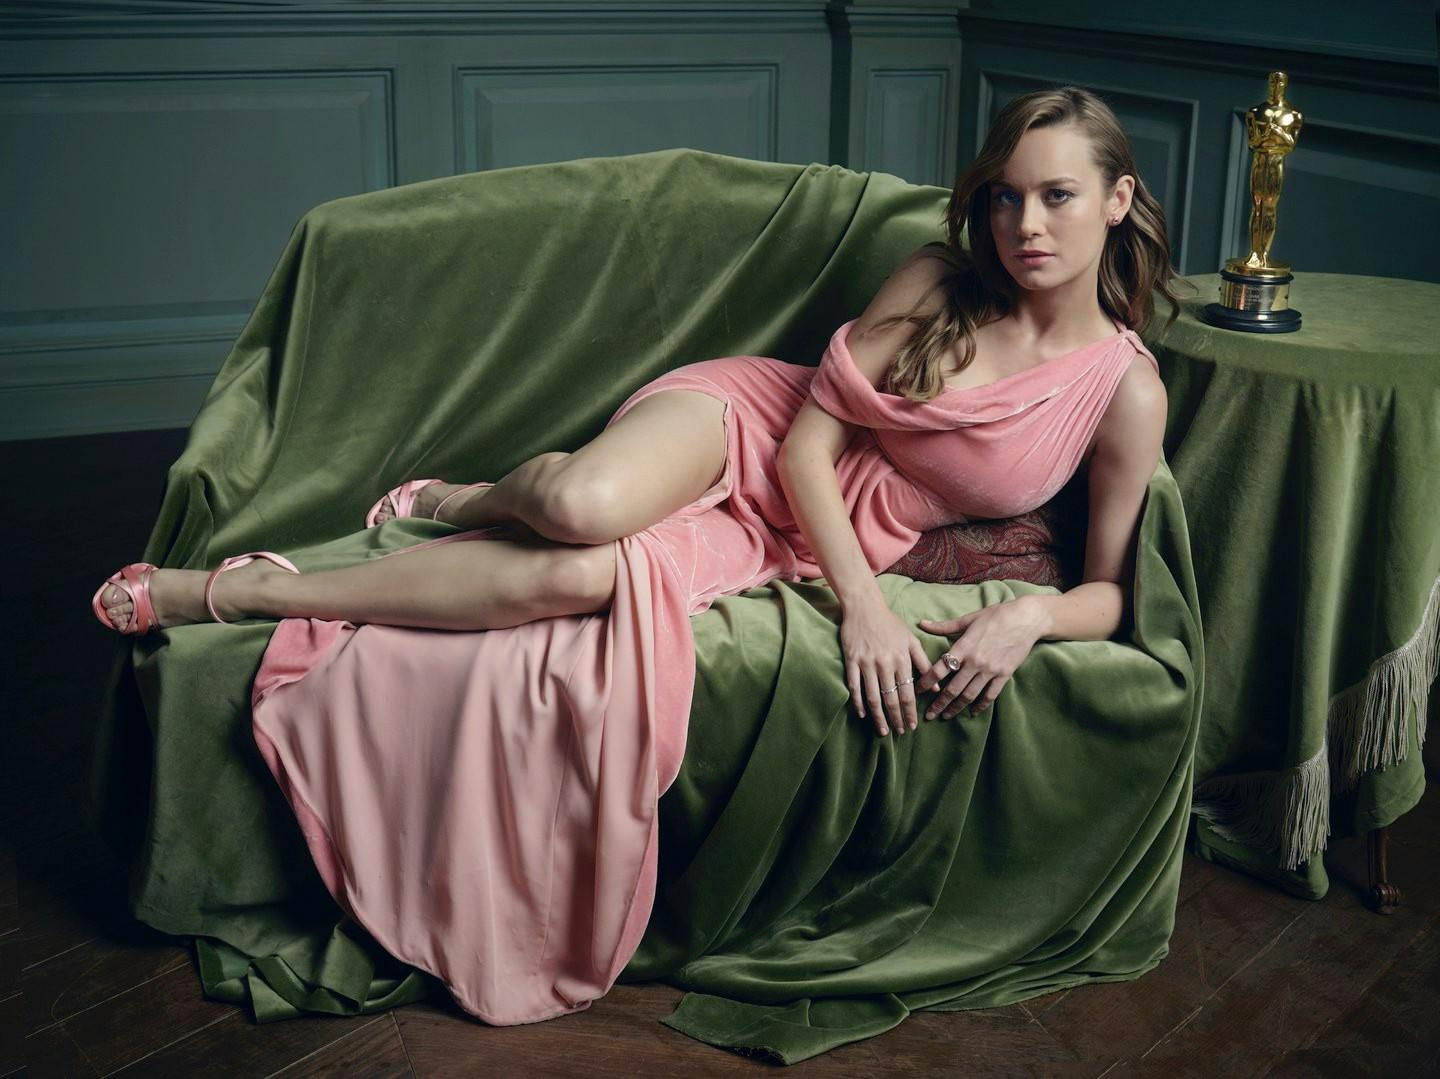 Golden Girls The 20 All Time Best Brie Larson Hot Photos